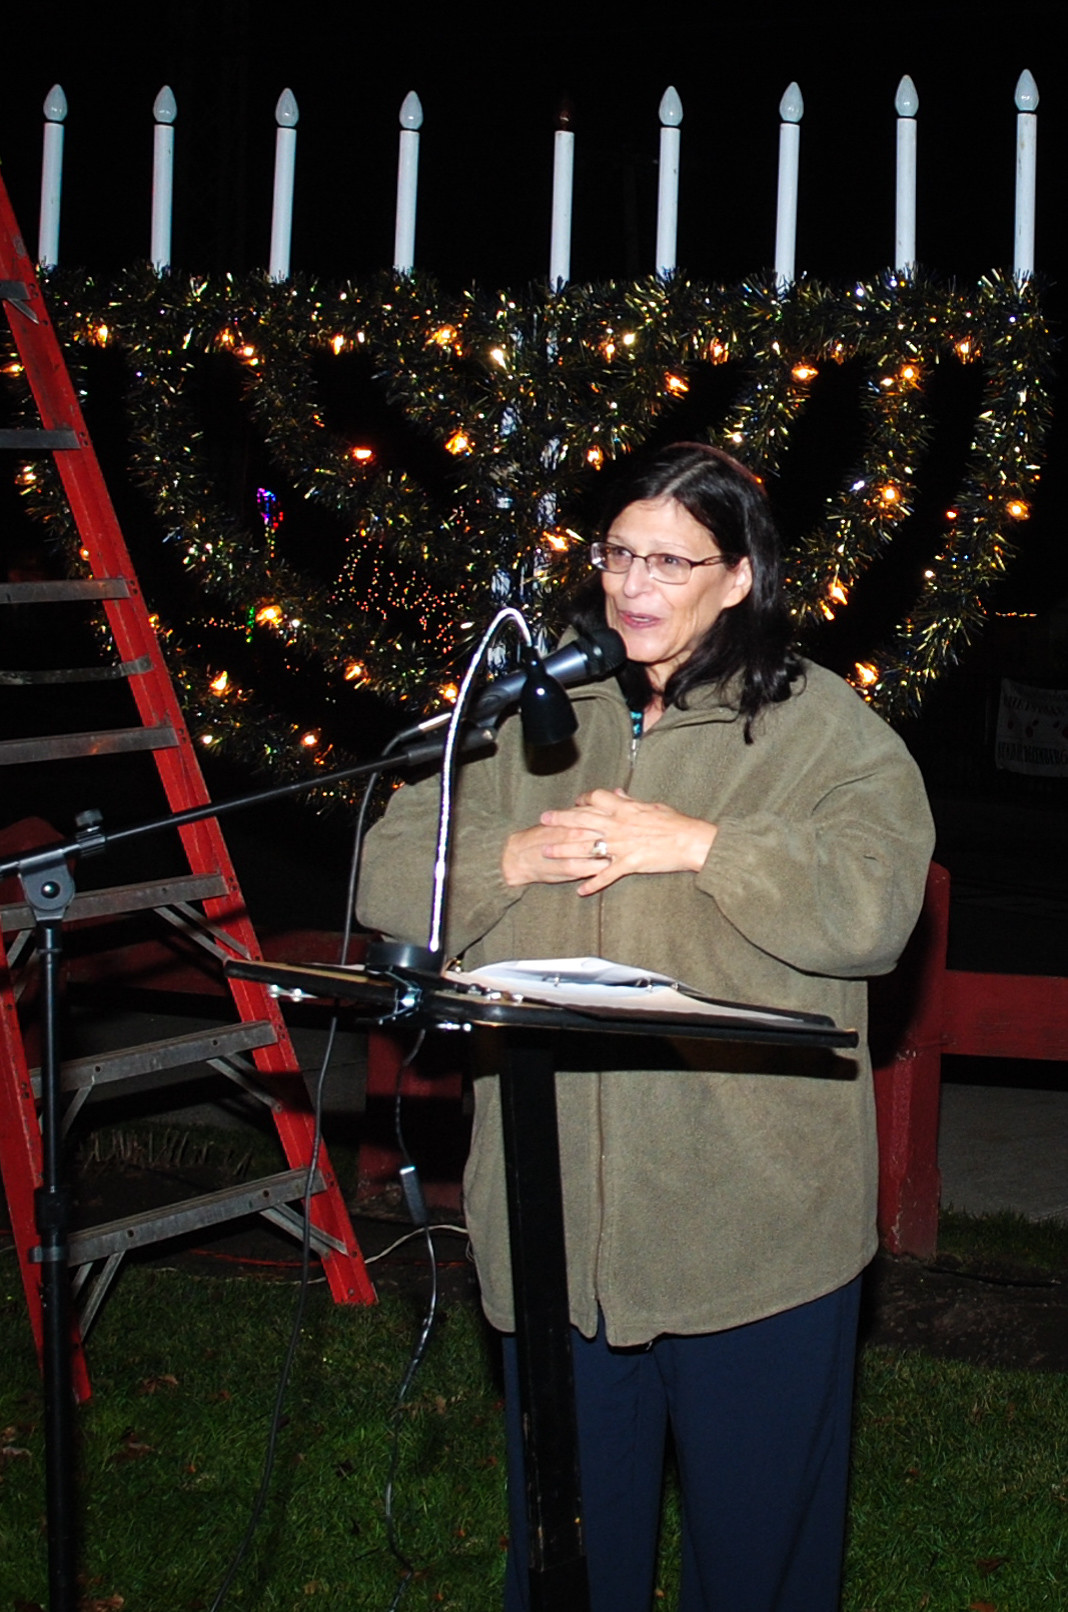 Rabbi Susan Elkodsi of the Malverne Jewish Center said a prayer during the lighting of the menorah in Malverne.